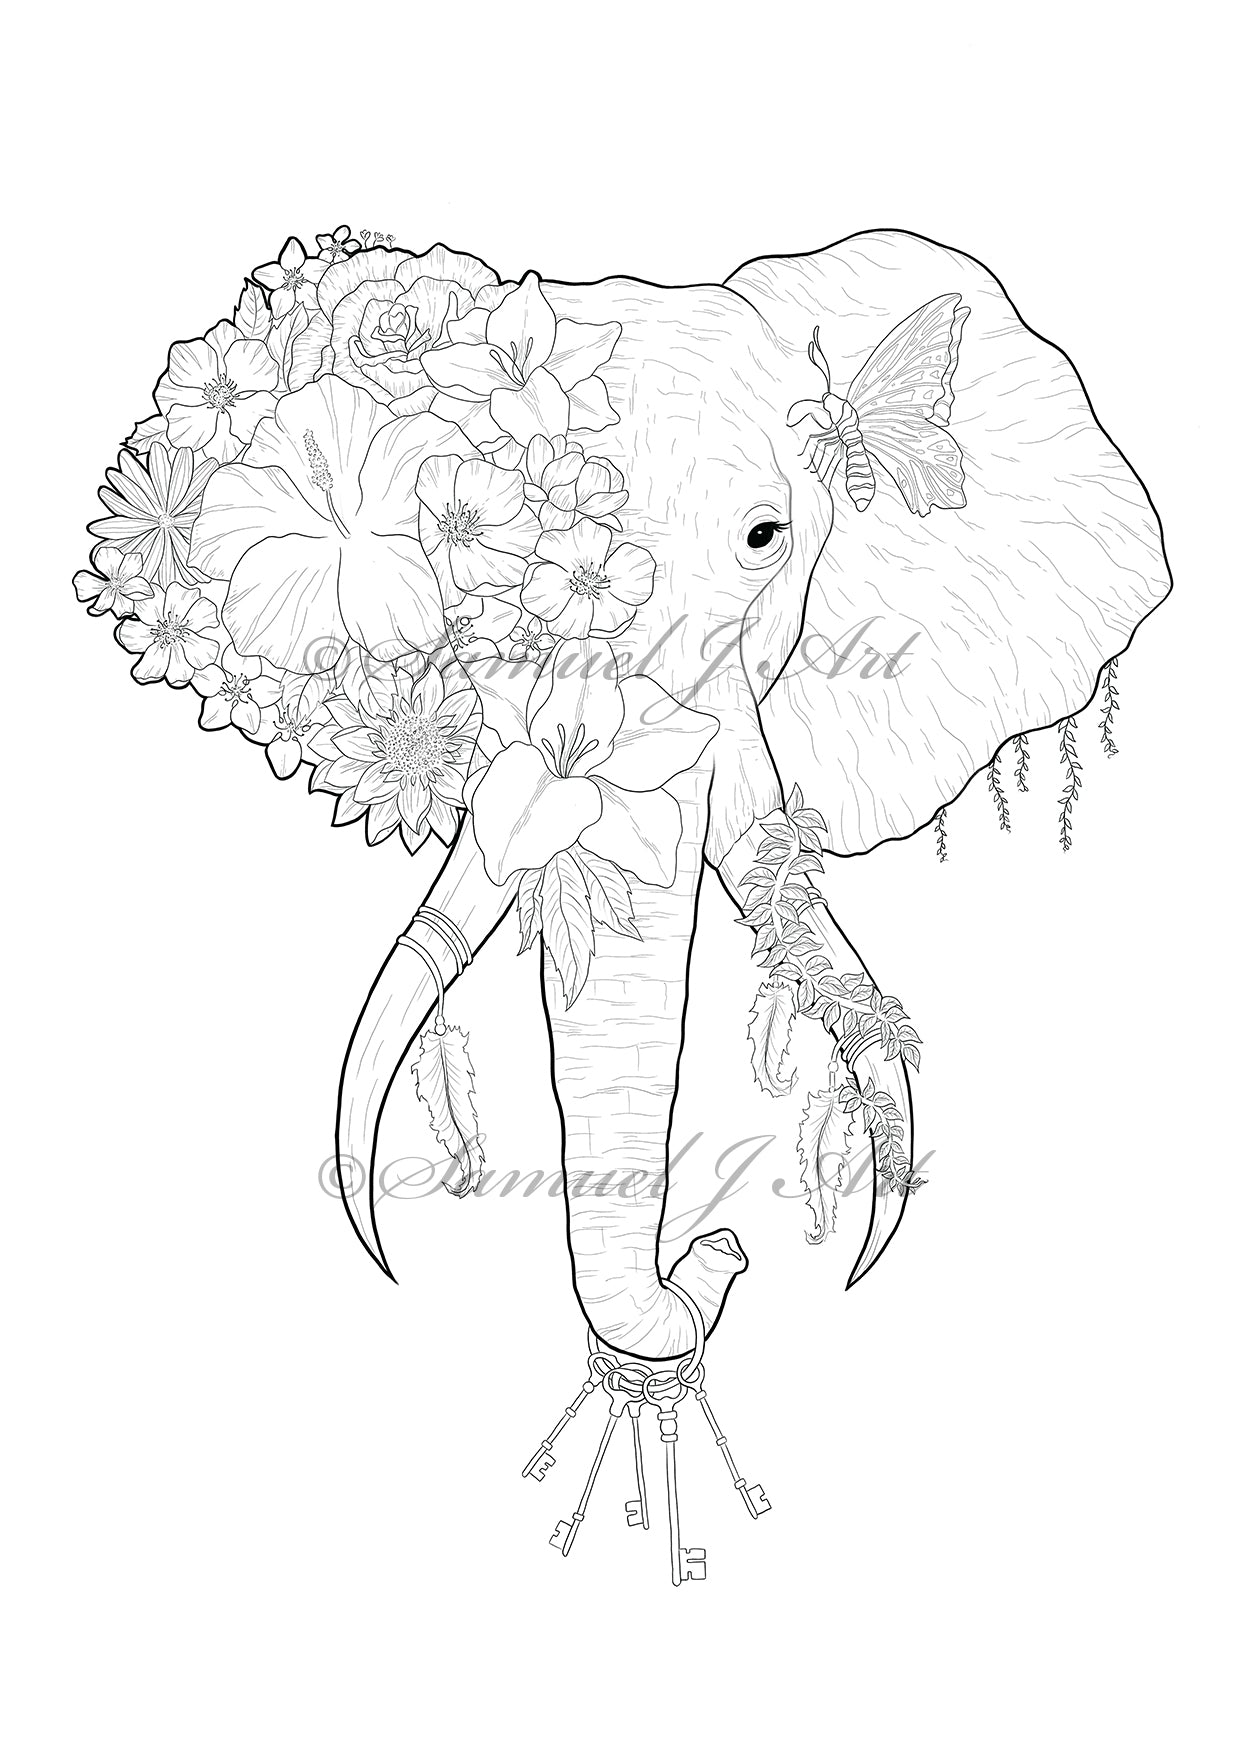 Floral Elephant - Colouring Template - Digital Download